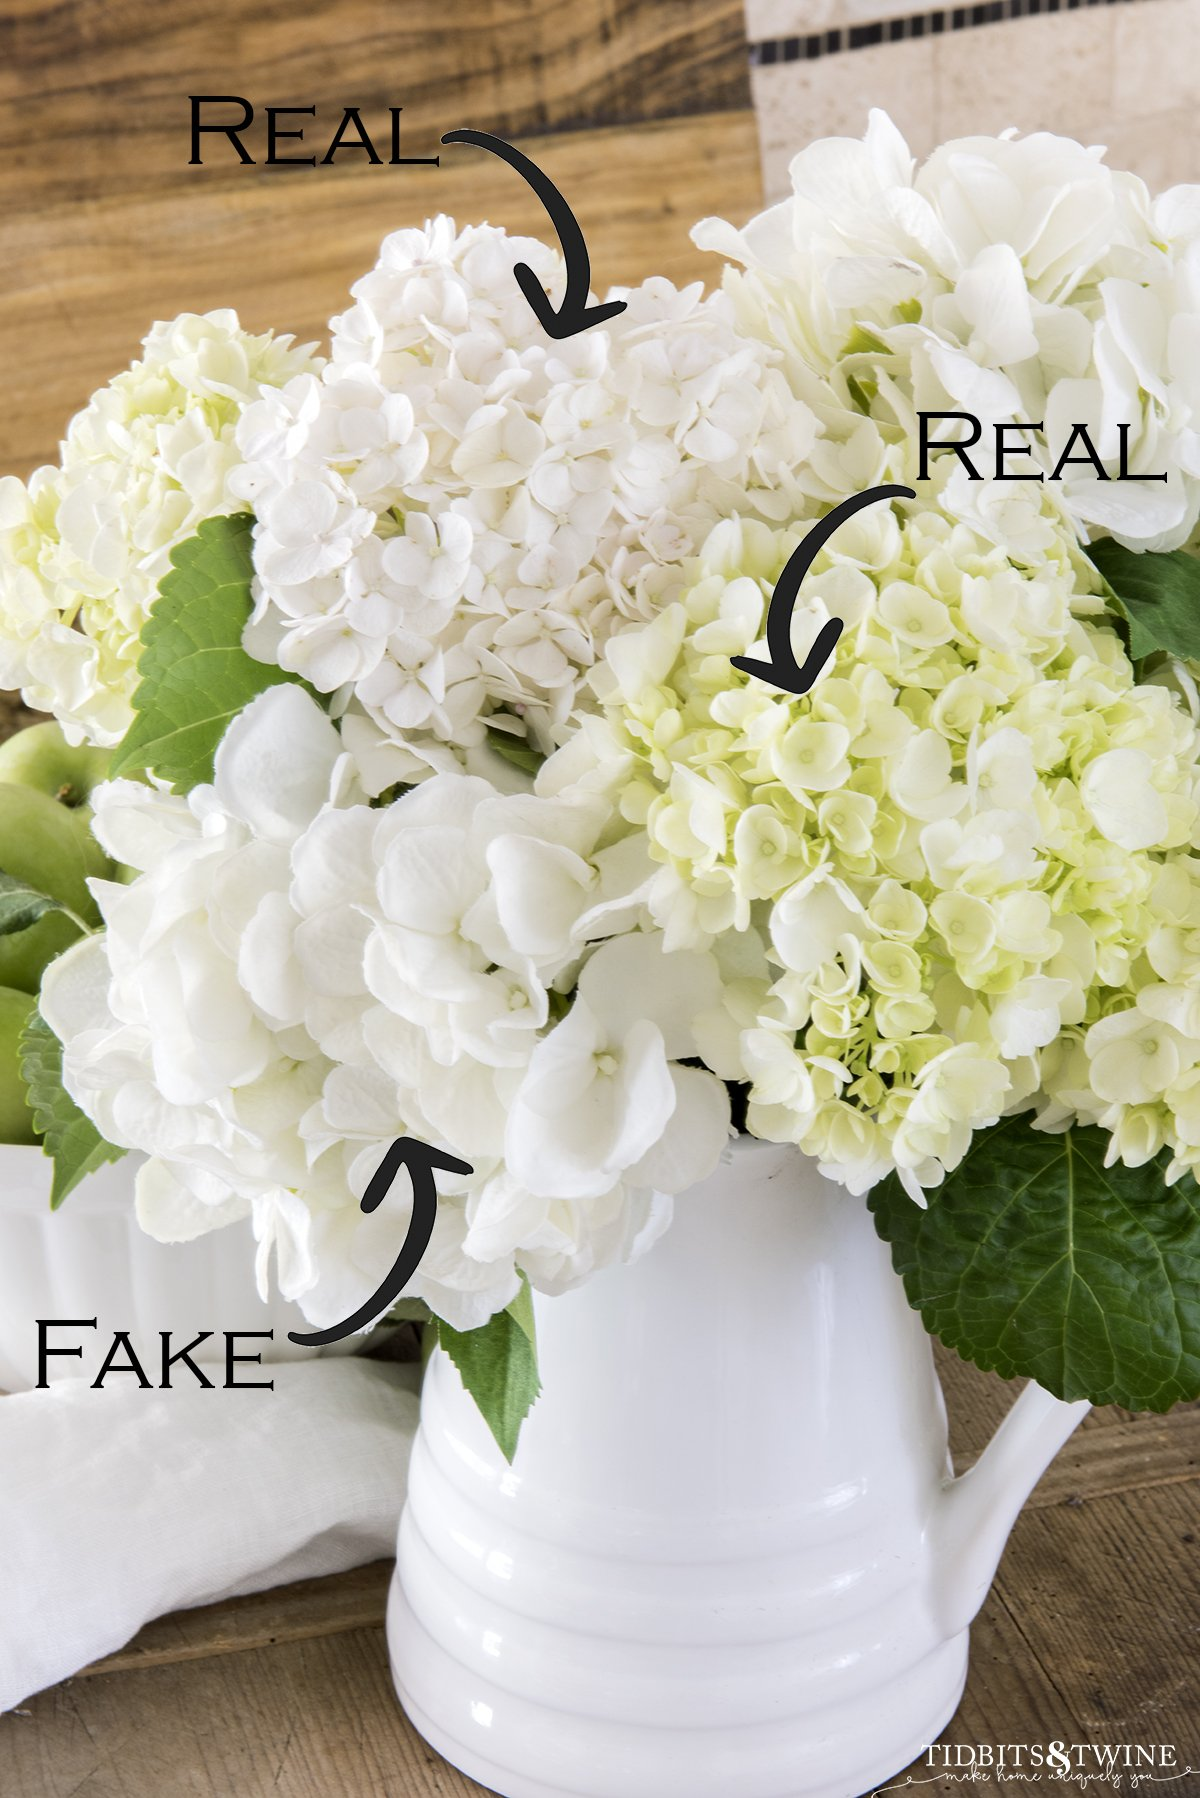 Closeup of white hydrangeas in a white pitcher with text overlay showing which are real and which are fake